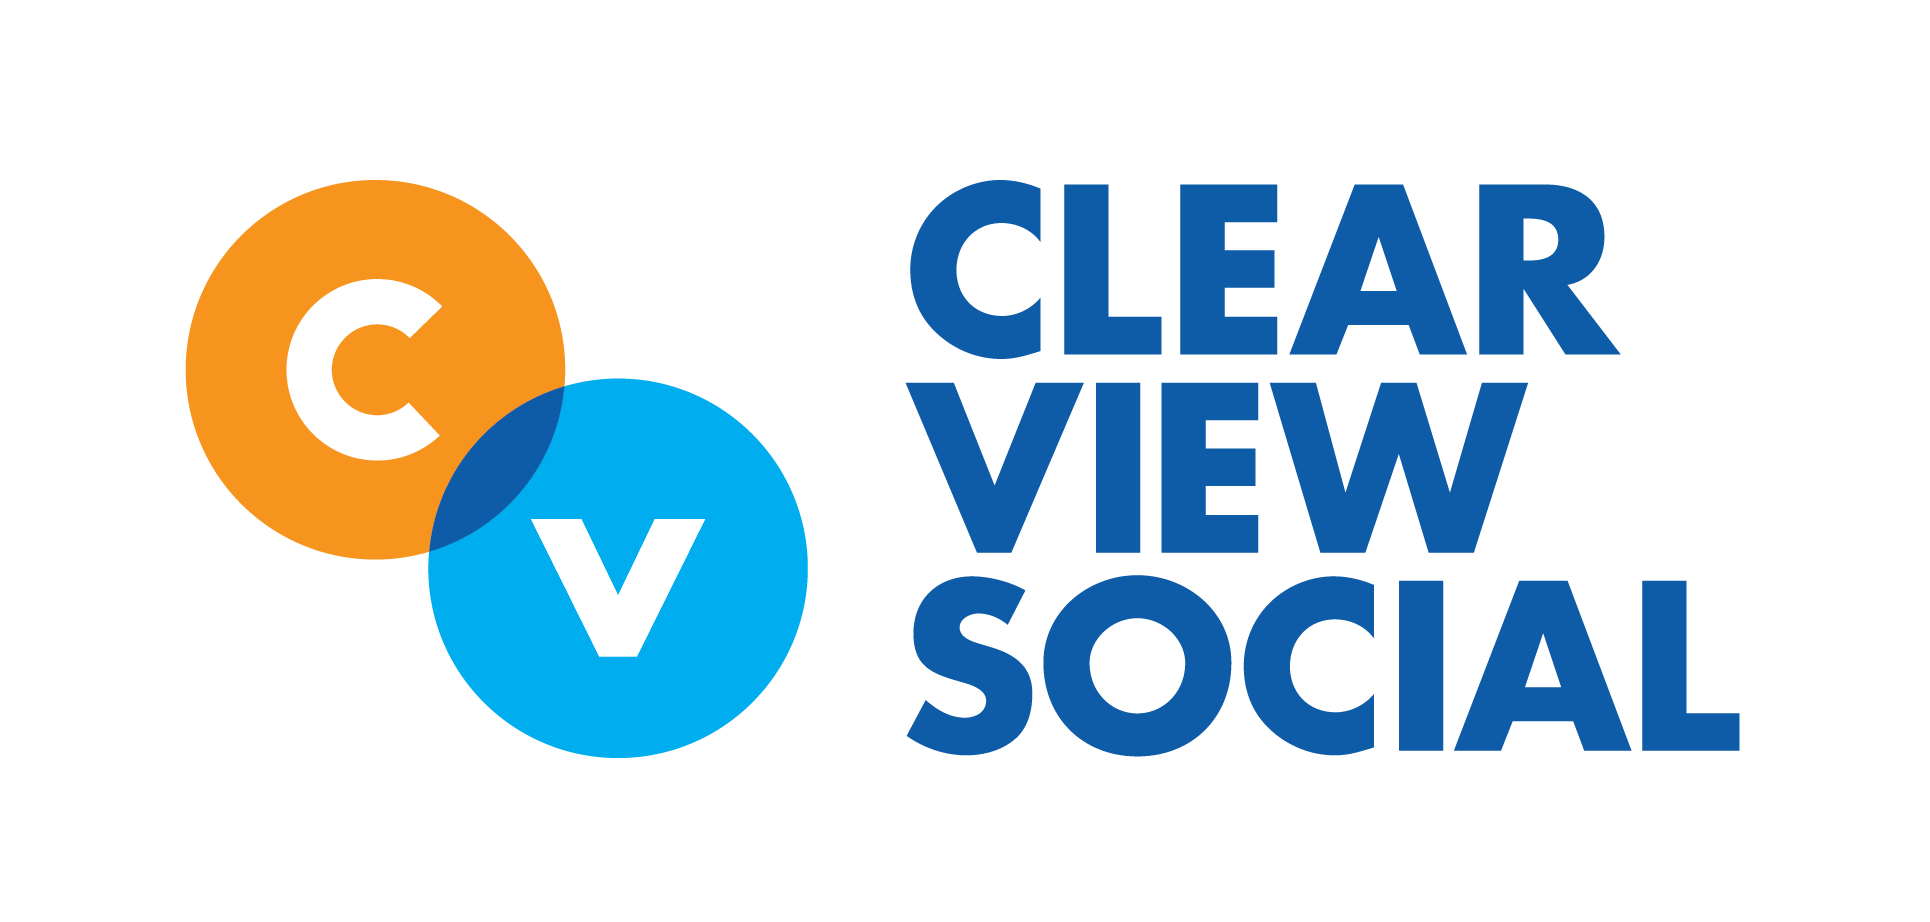 Clearview-Social-Logo